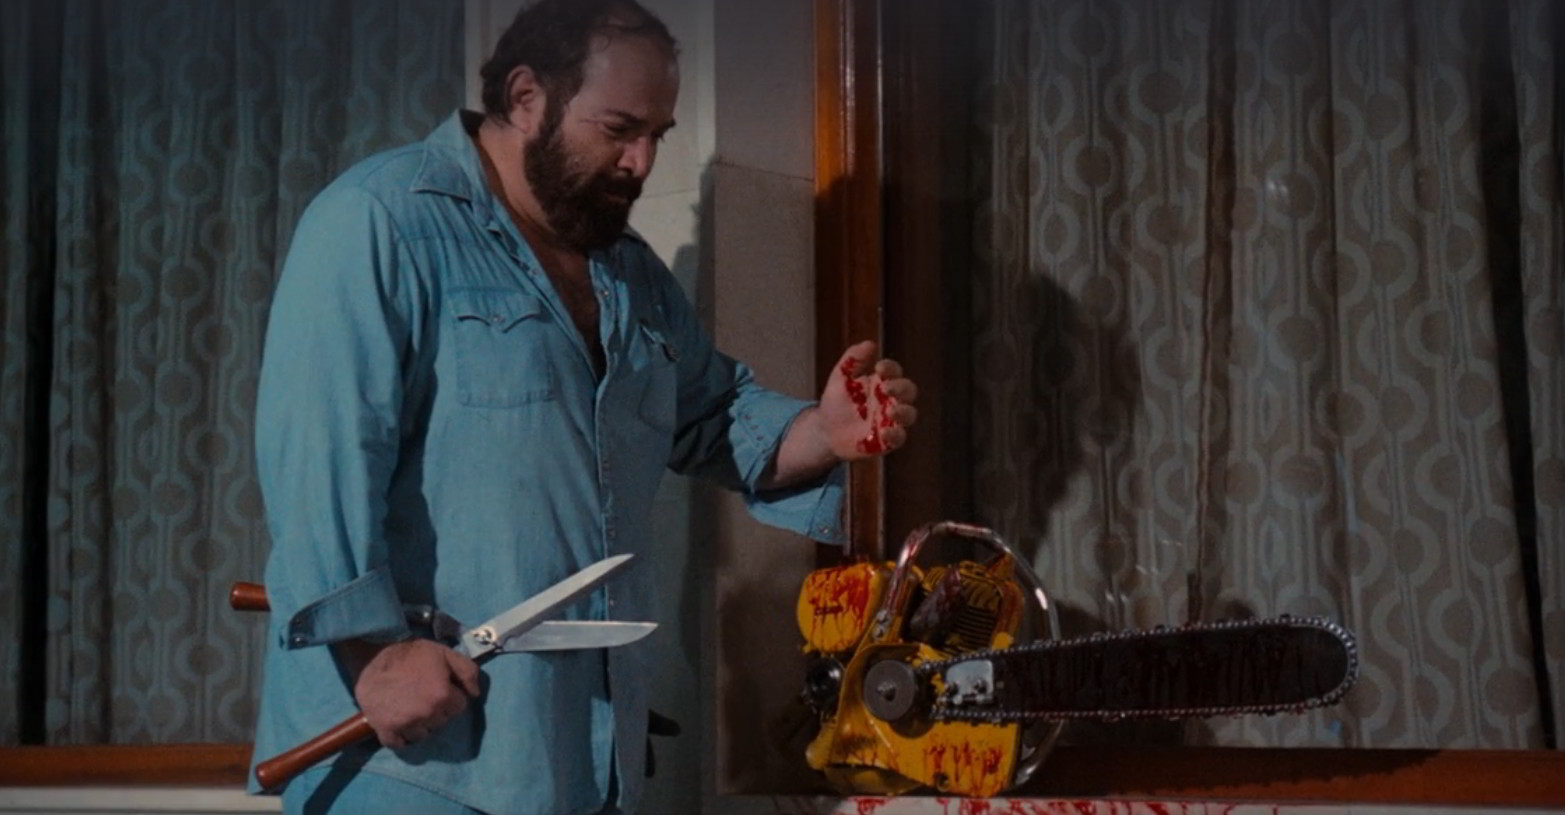 A still shot taken from the 1982 horror film Pieces. It shows a hulking man in pajamas standing over a bloody chainsaw.